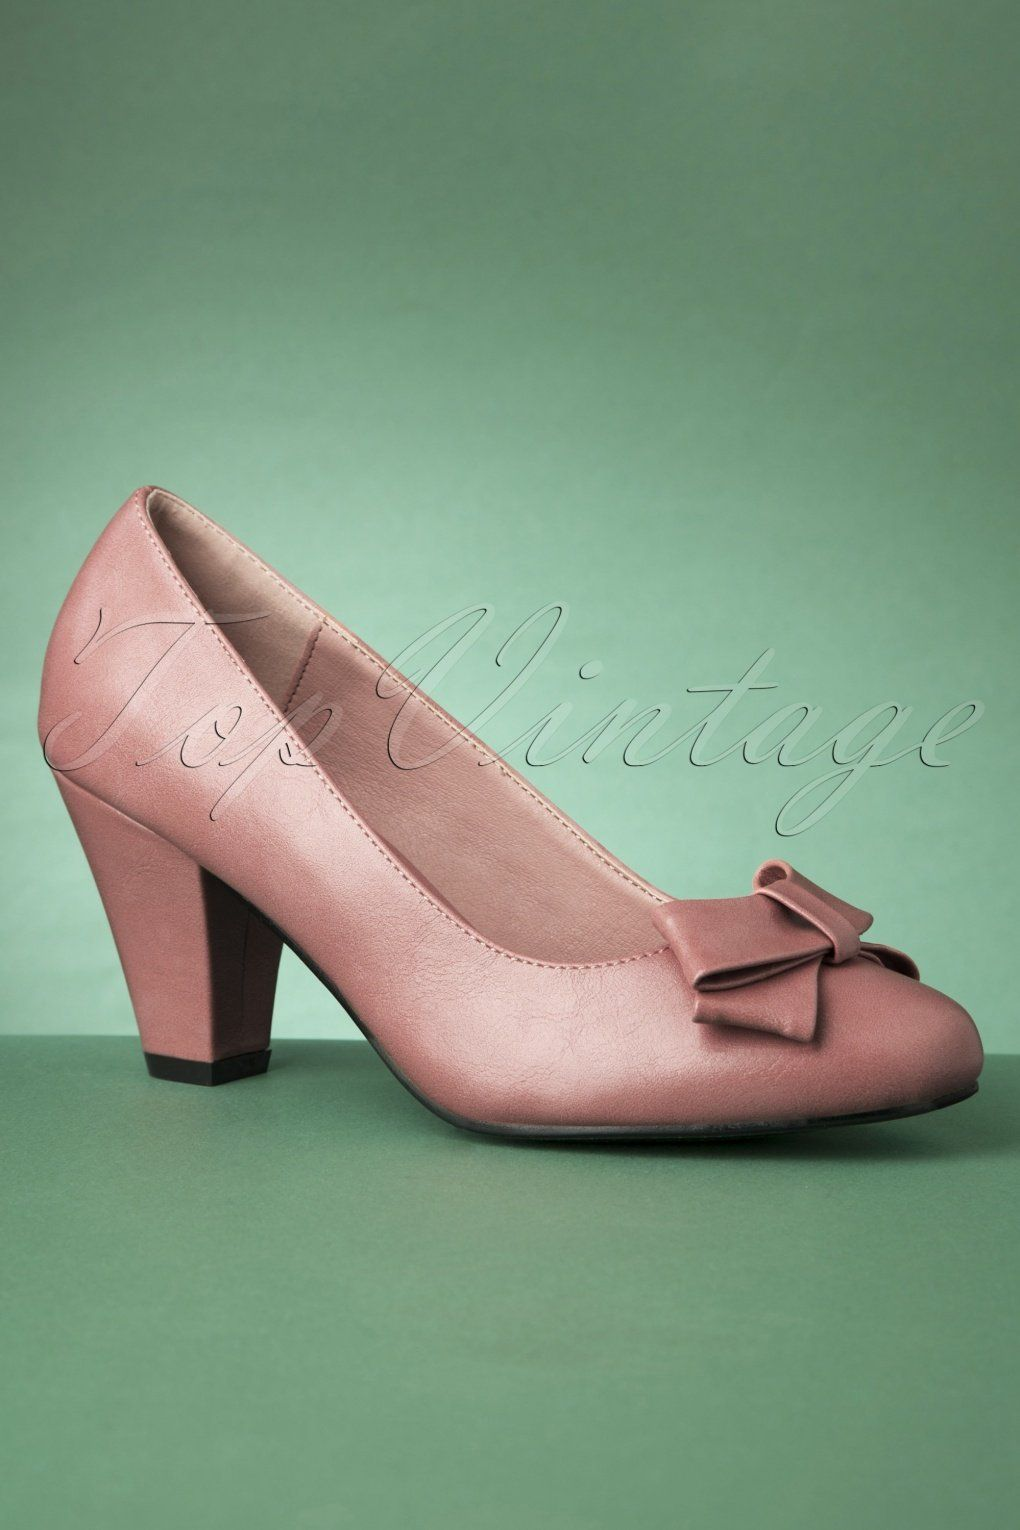 1950s Style Shoes Heels Flats Boots 1950s Fashion Shoes Fashion Shoes Heels